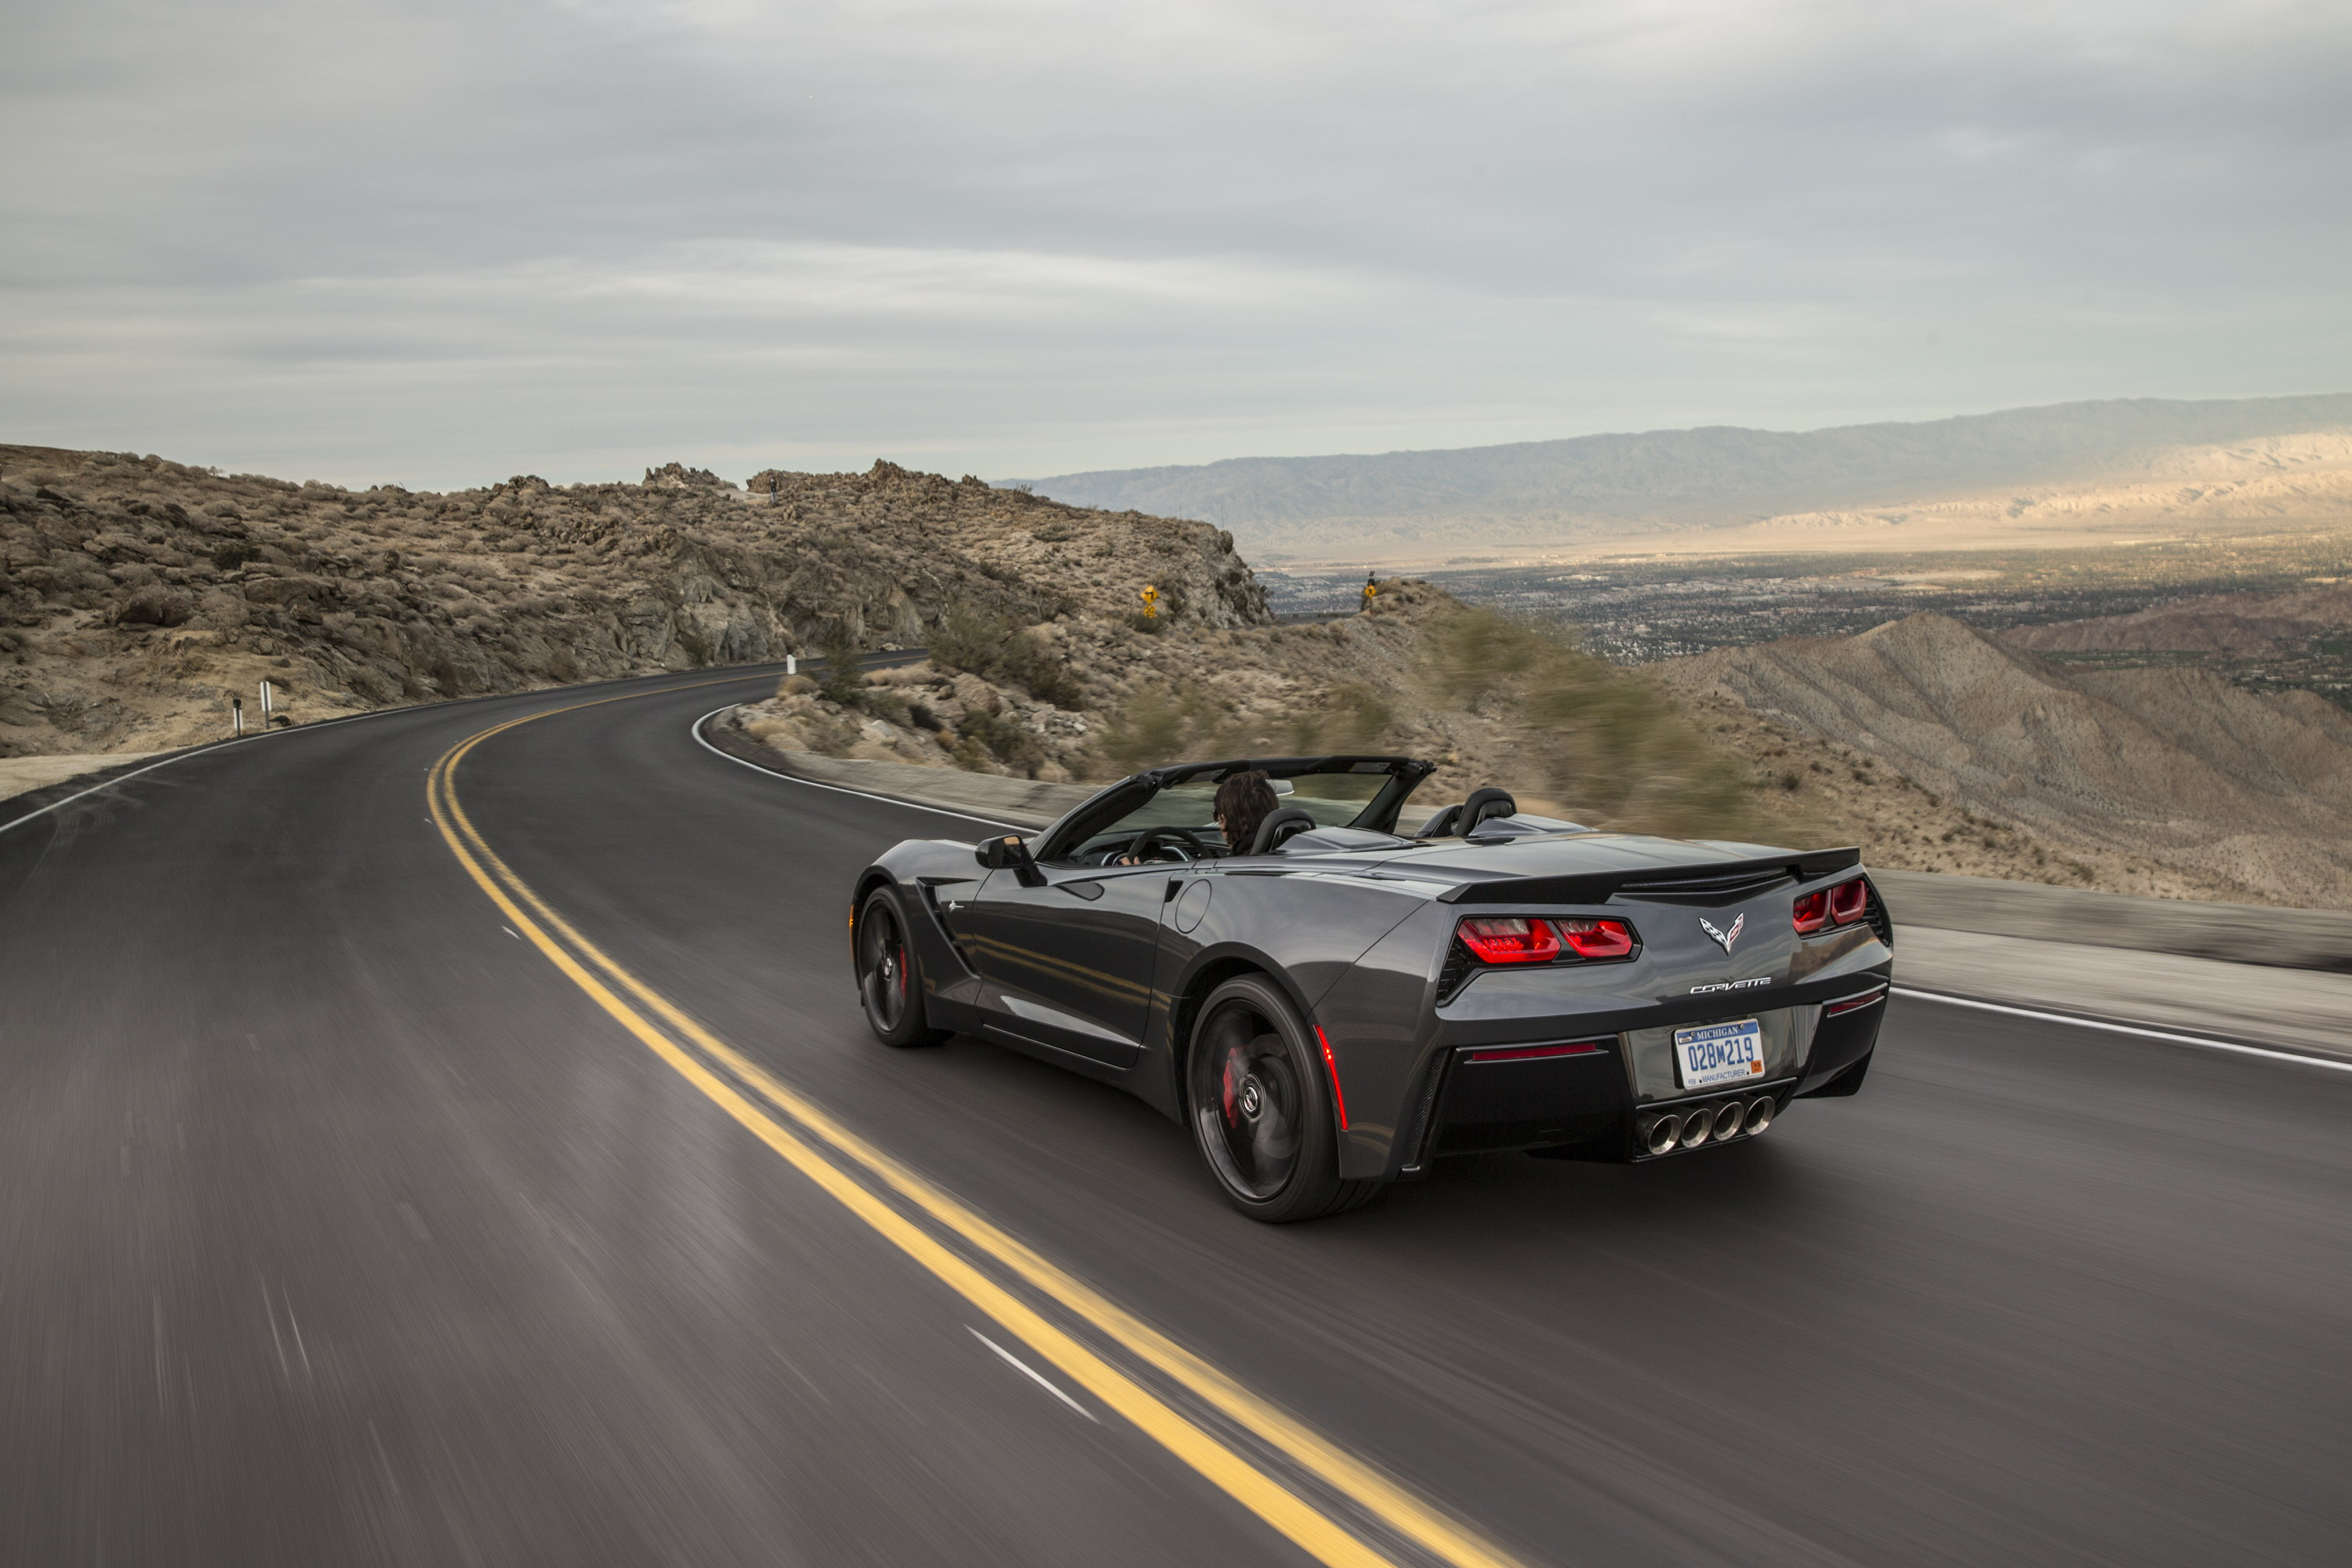 2014 chevrolet corvette stingray convertible review top speed. Cars Review. Best American Auto & Cars Review